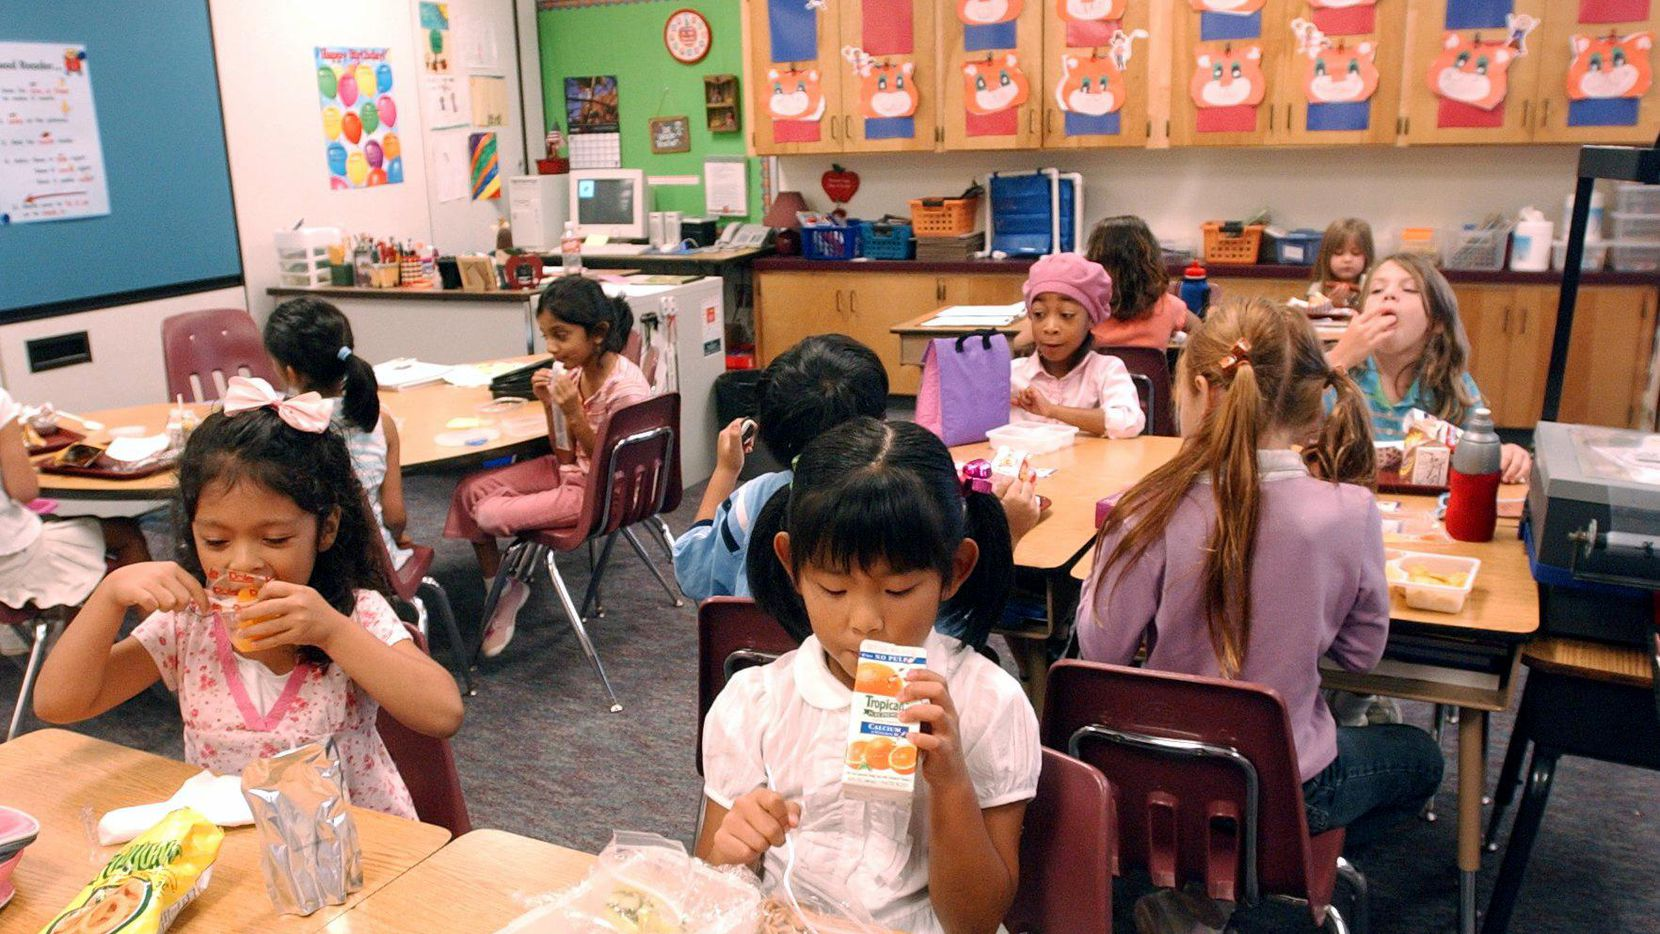 In this file photo, students eat lunch in a Plano ISD classroom.